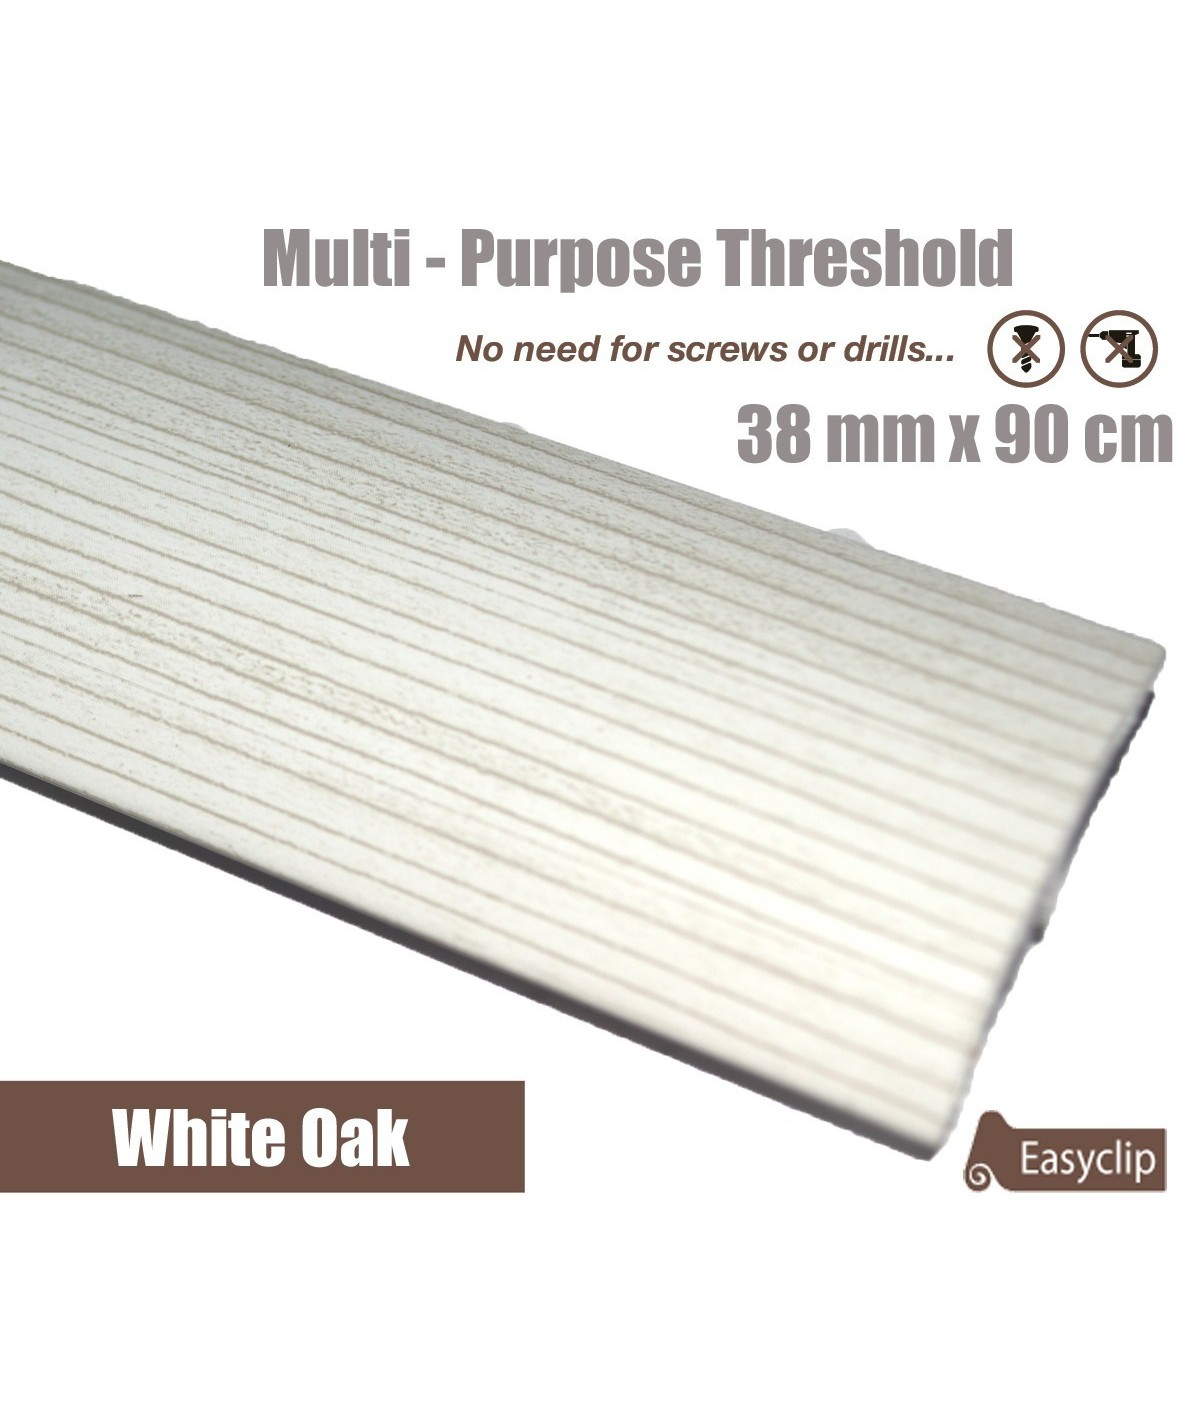 White Oak Laminated Transition Threshold Strip 38mm Multi-Height/Pivots 90cm